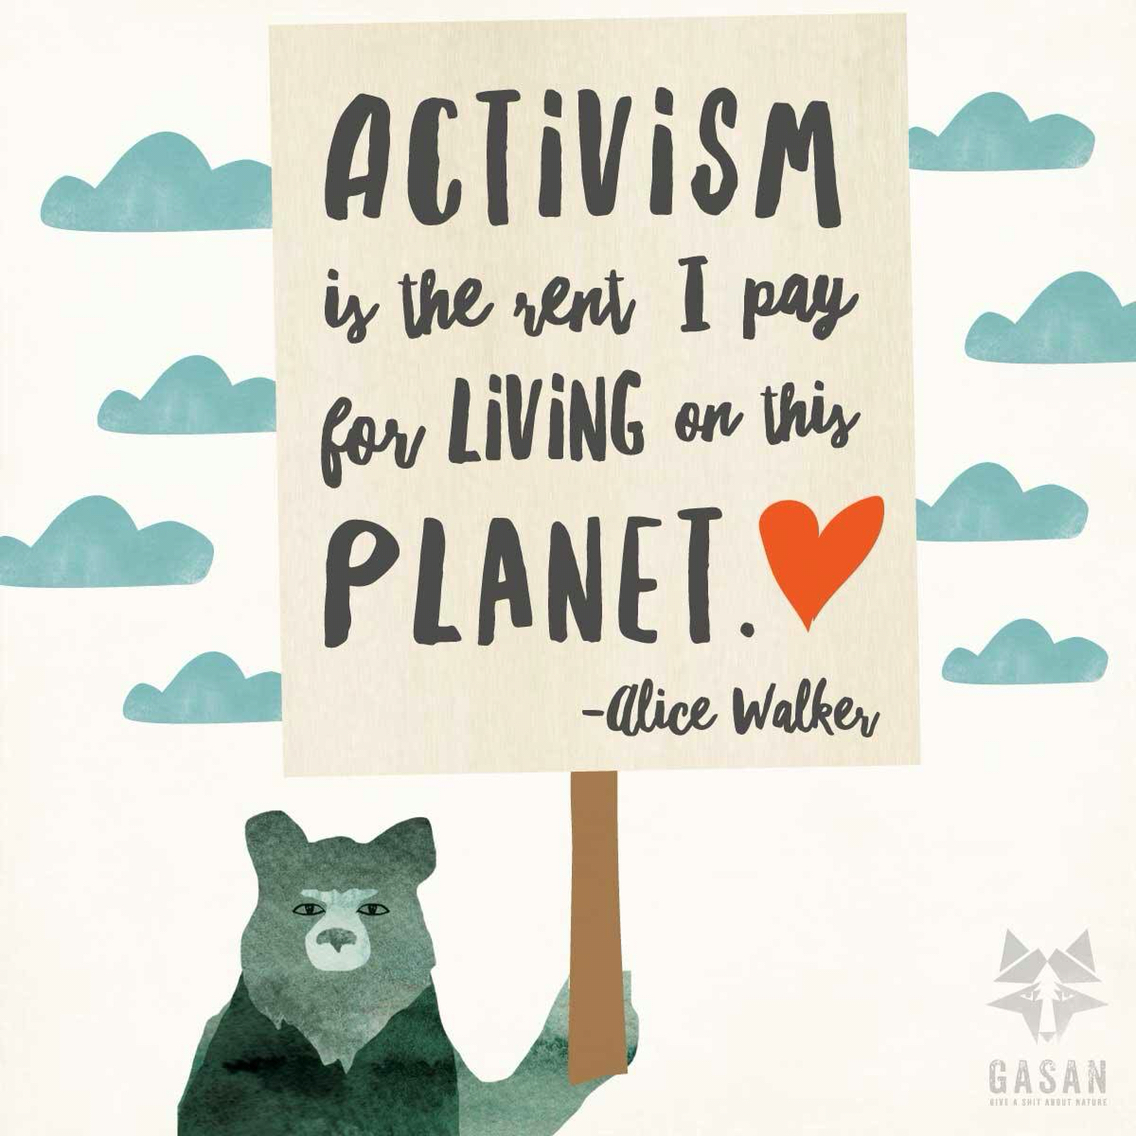 Activism is the rent I pay for living on this planet.